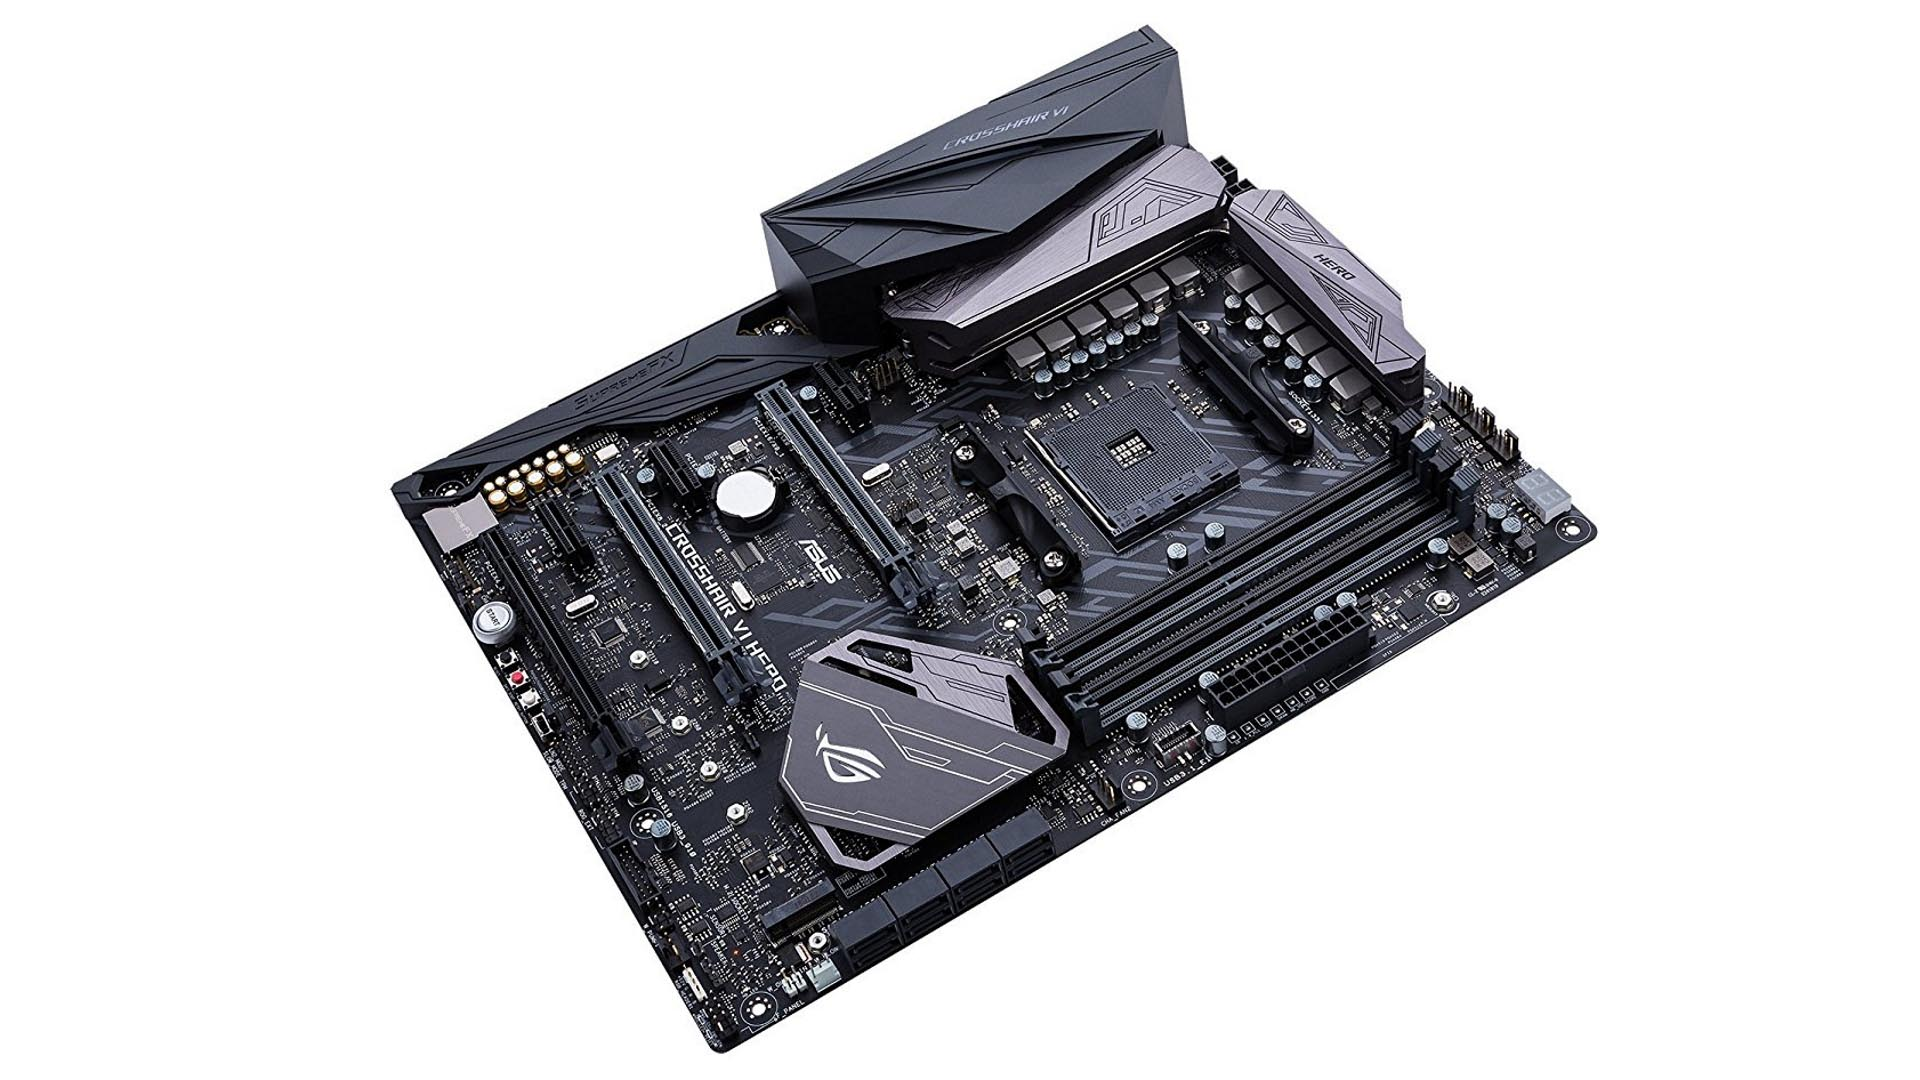 find a compatible motherboard